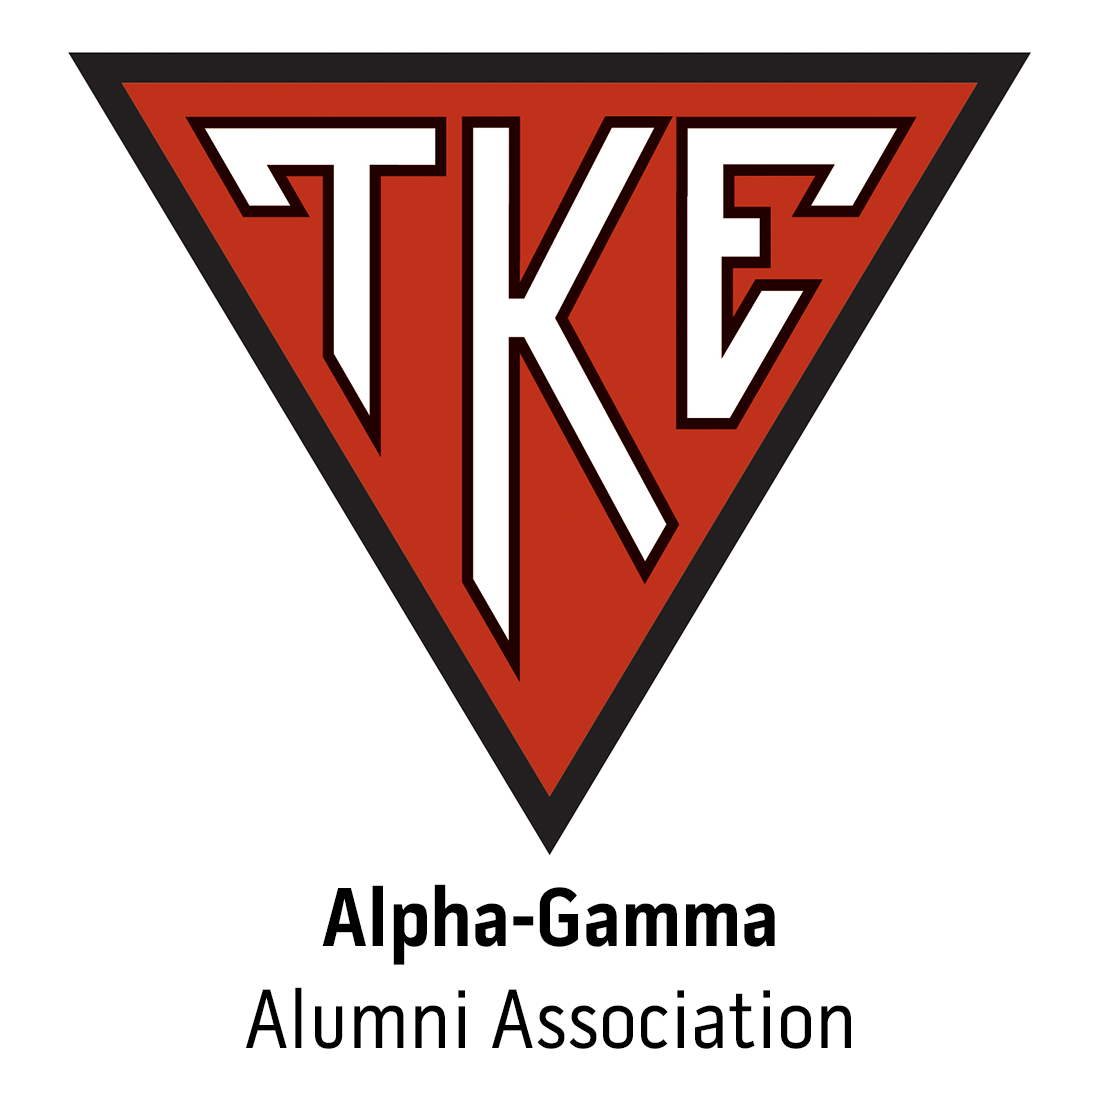 Alpha-Gamma Alumni Association for Washington State University